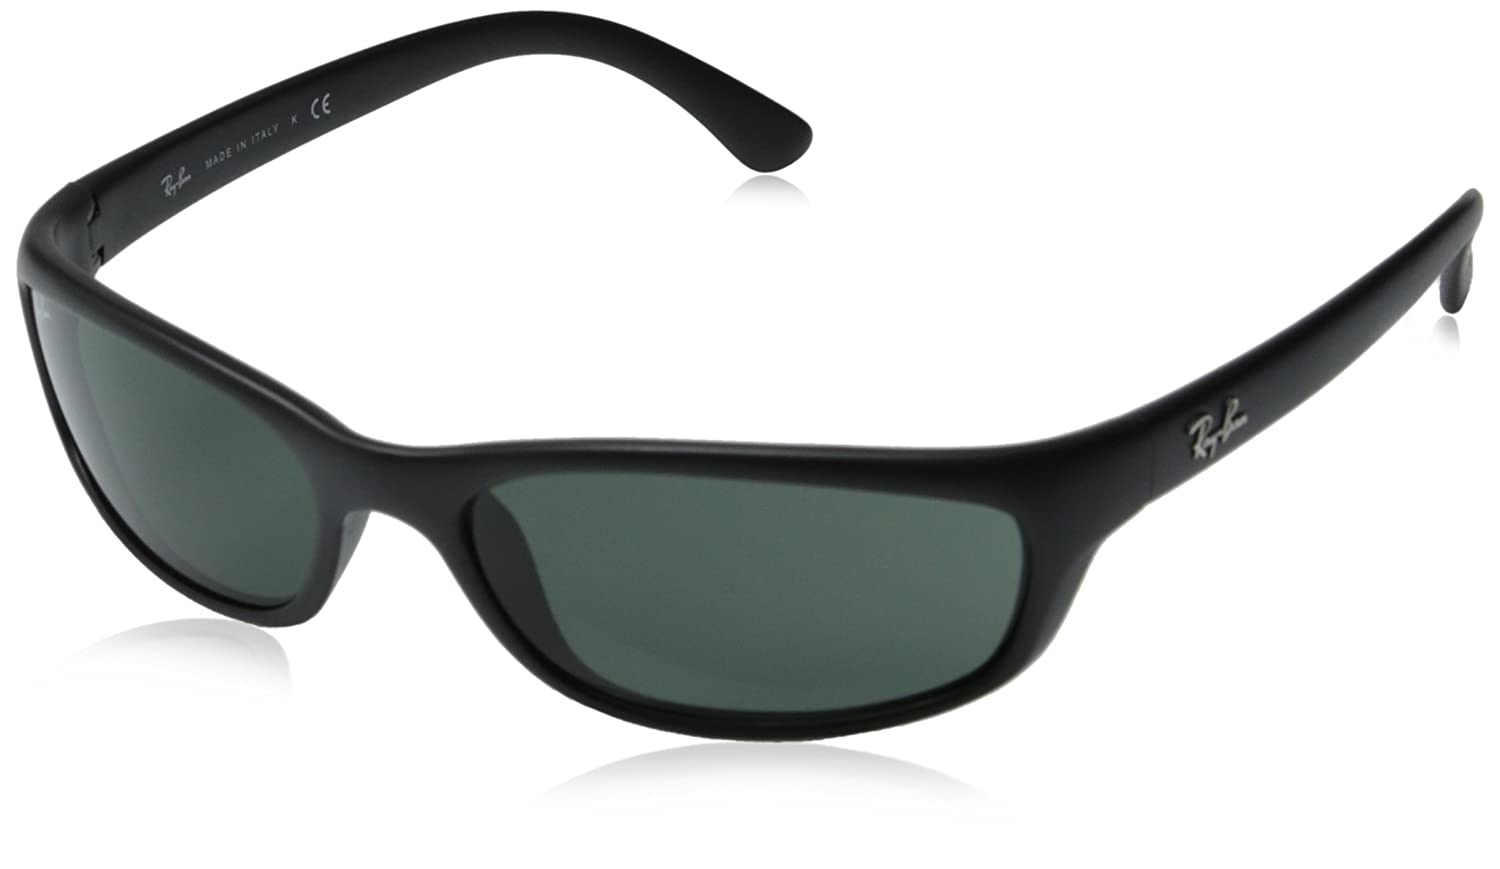 change glass on ray ban  amazon: ray ban sunglasses rb4115 / frame: matte black lens: grey green: ray ban: shoes